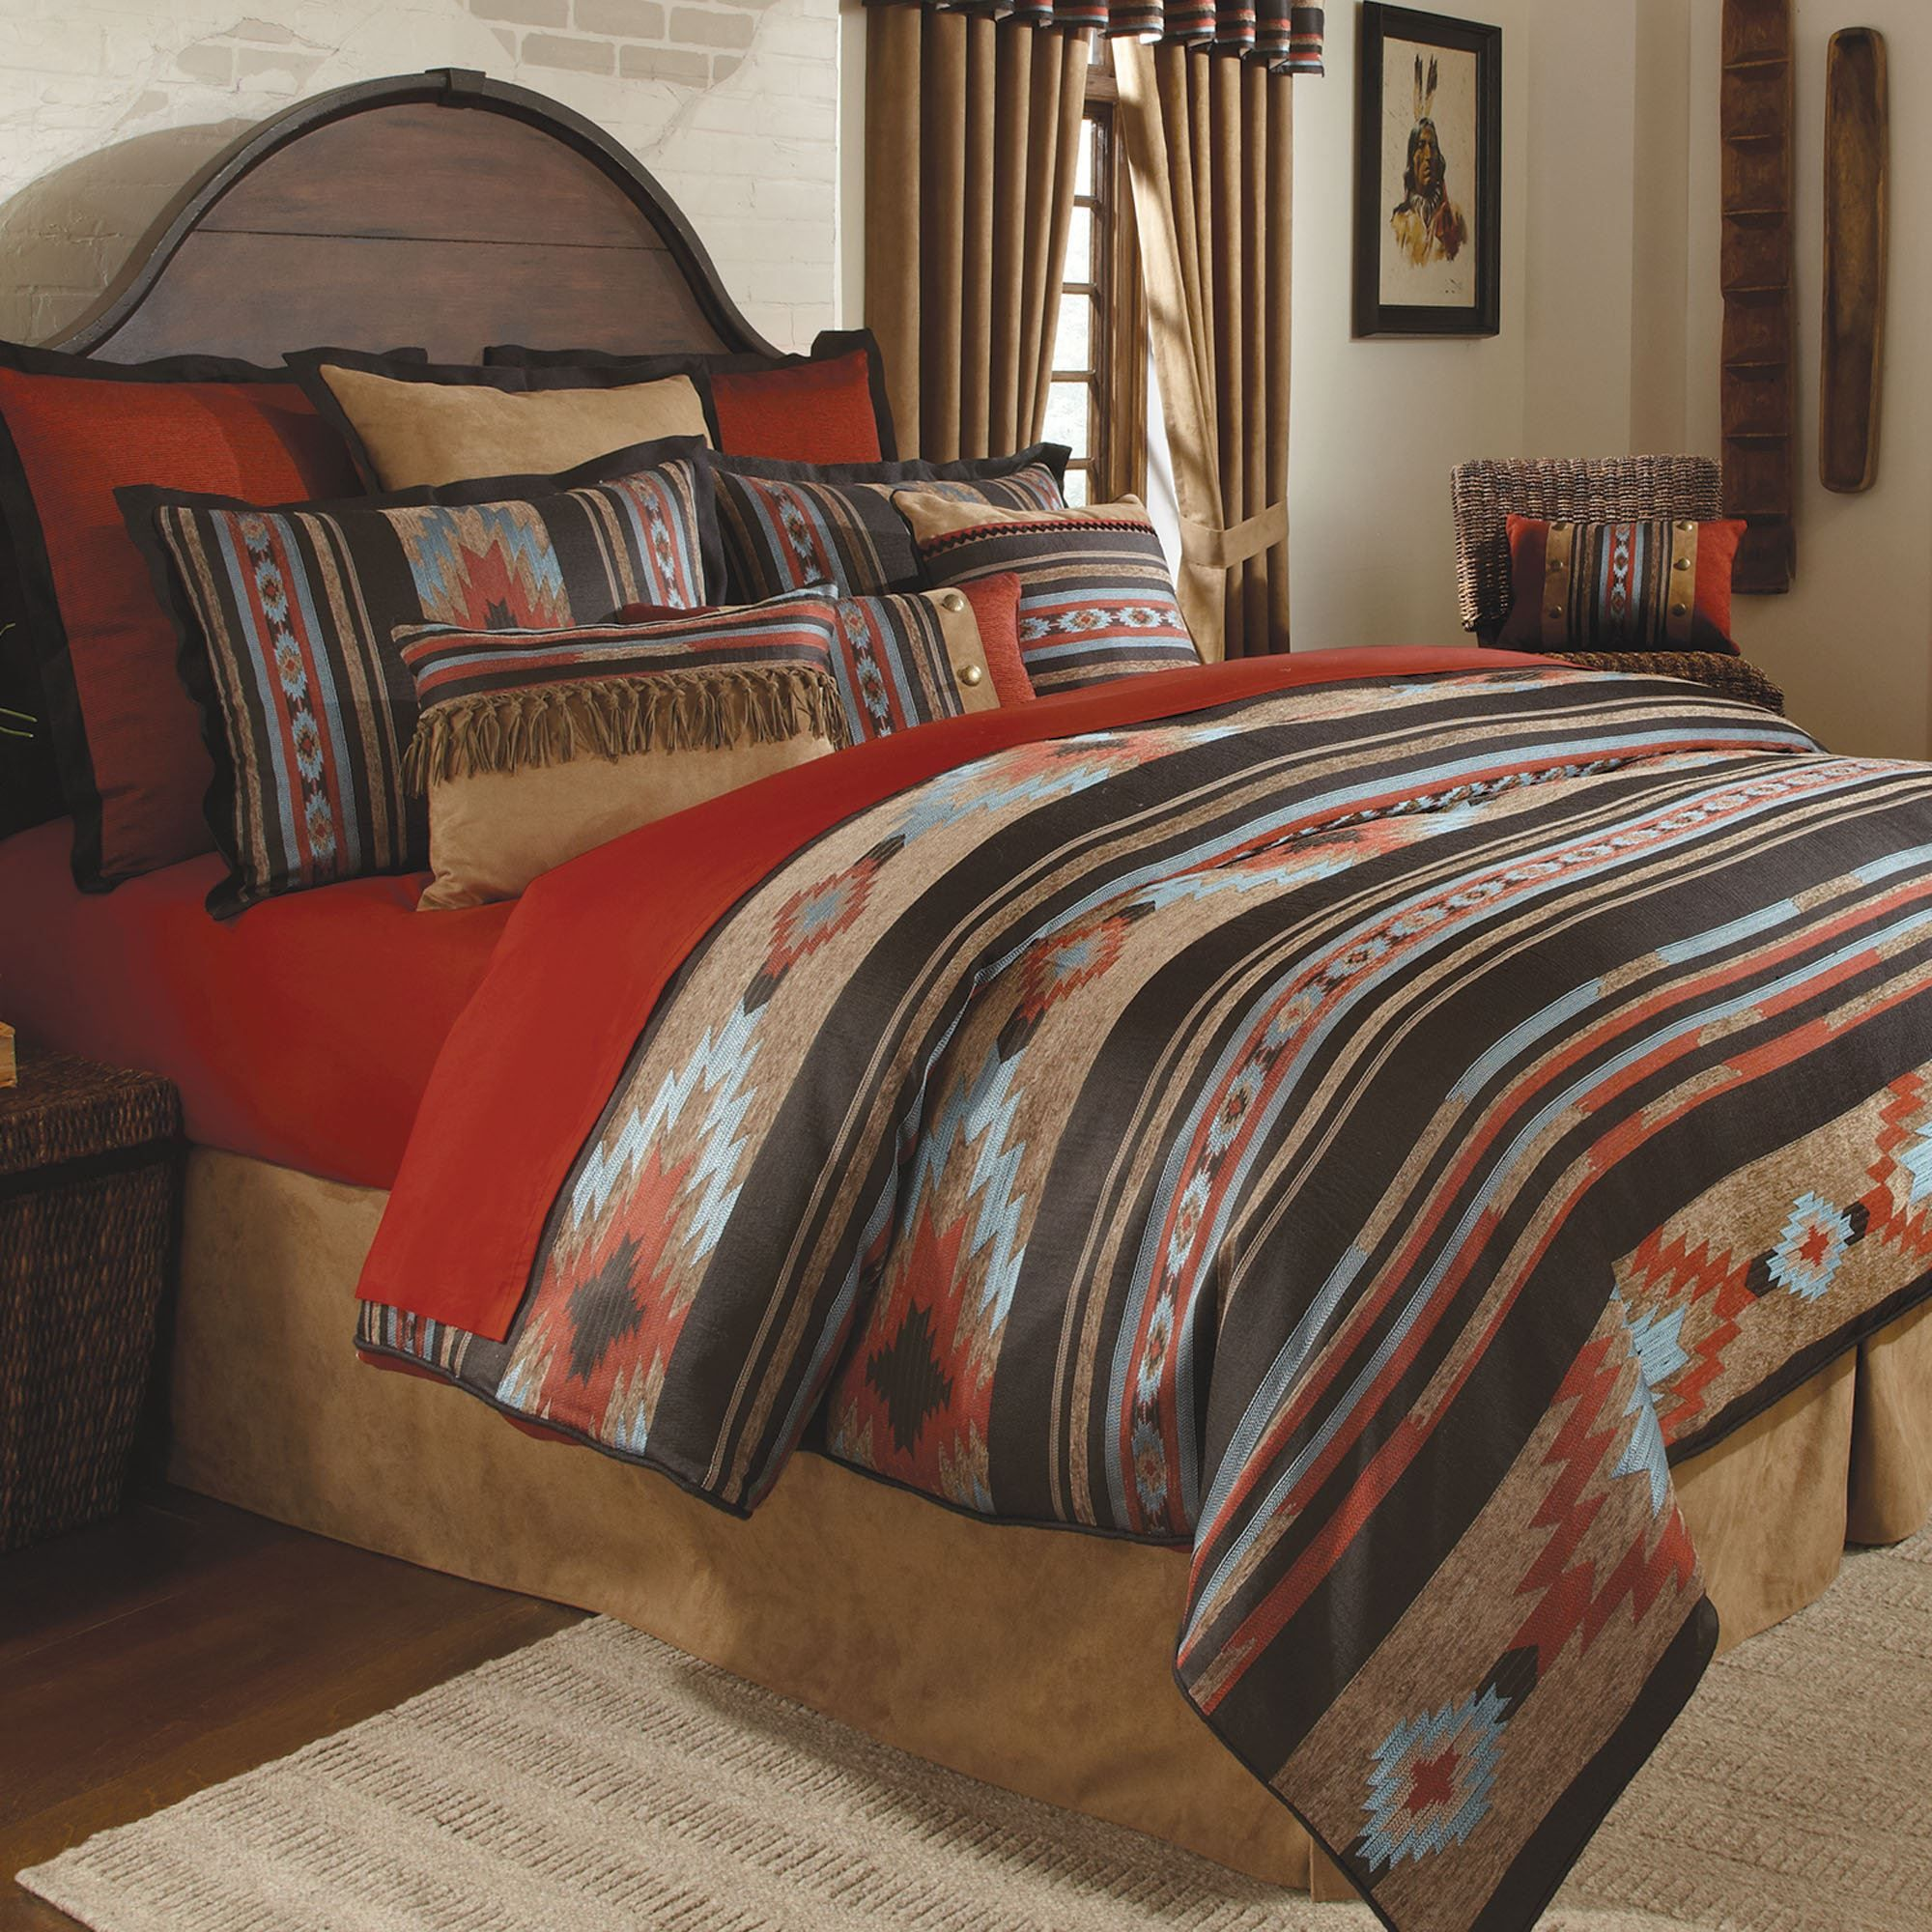 comforter hesstonspeedway cabin bedding sheets decor rustic themed tunning style info uk log sets rutic eae bed comforters